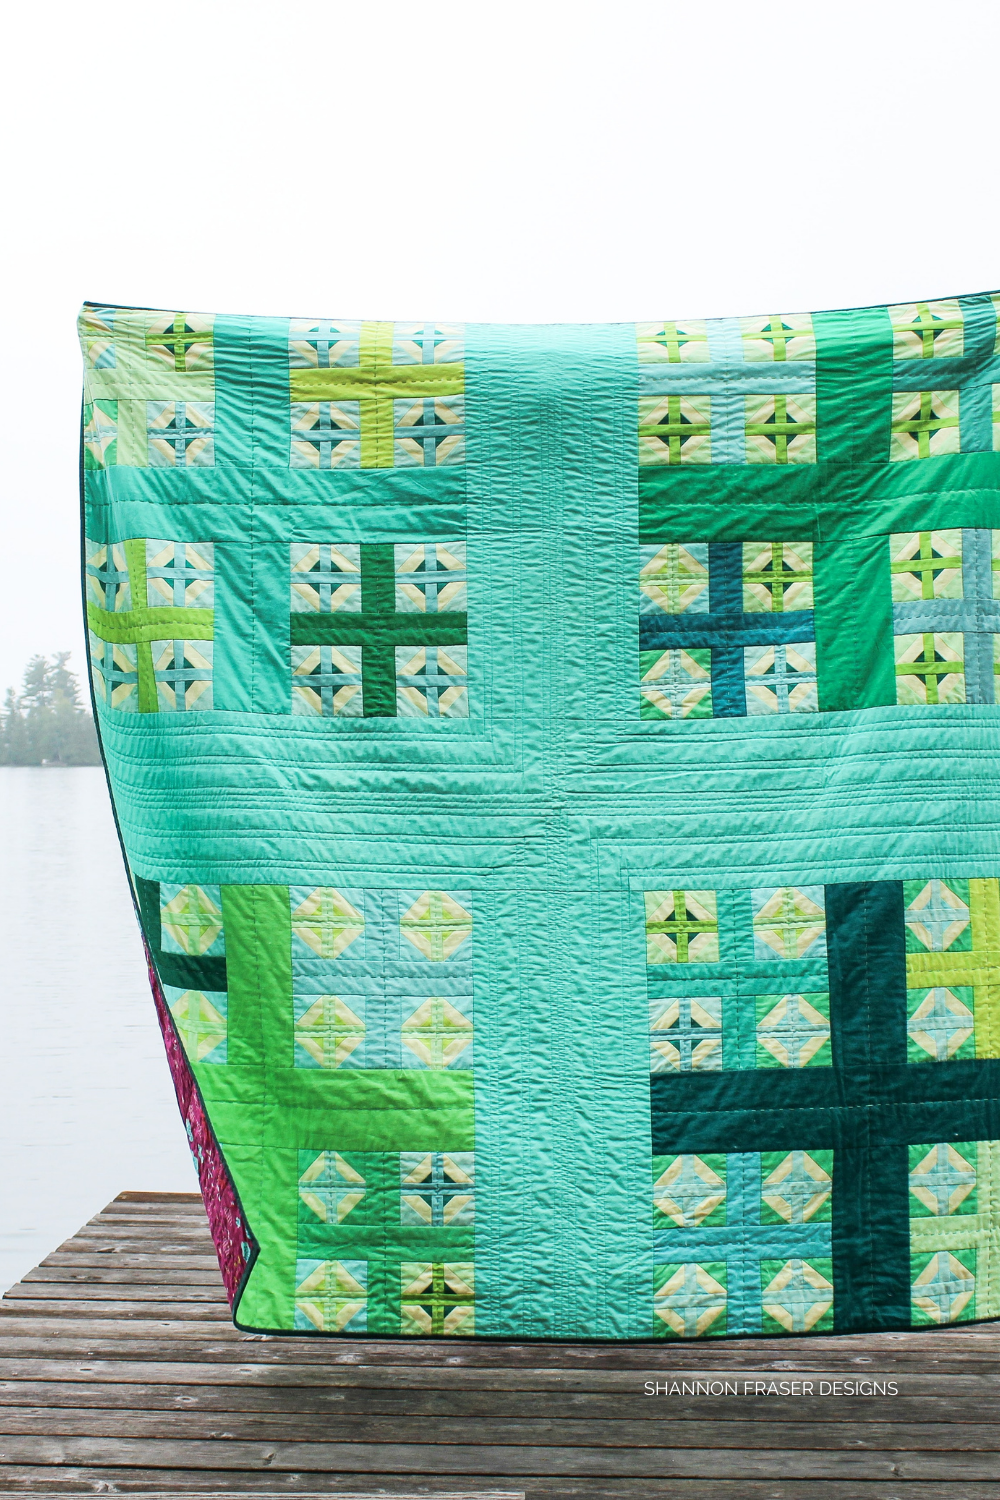 Plus Infinity quilt on a foggy summer morning | Modern plus quilt pattern featured in Curated Quilts | Shannon Fraser Designs #crossquilt